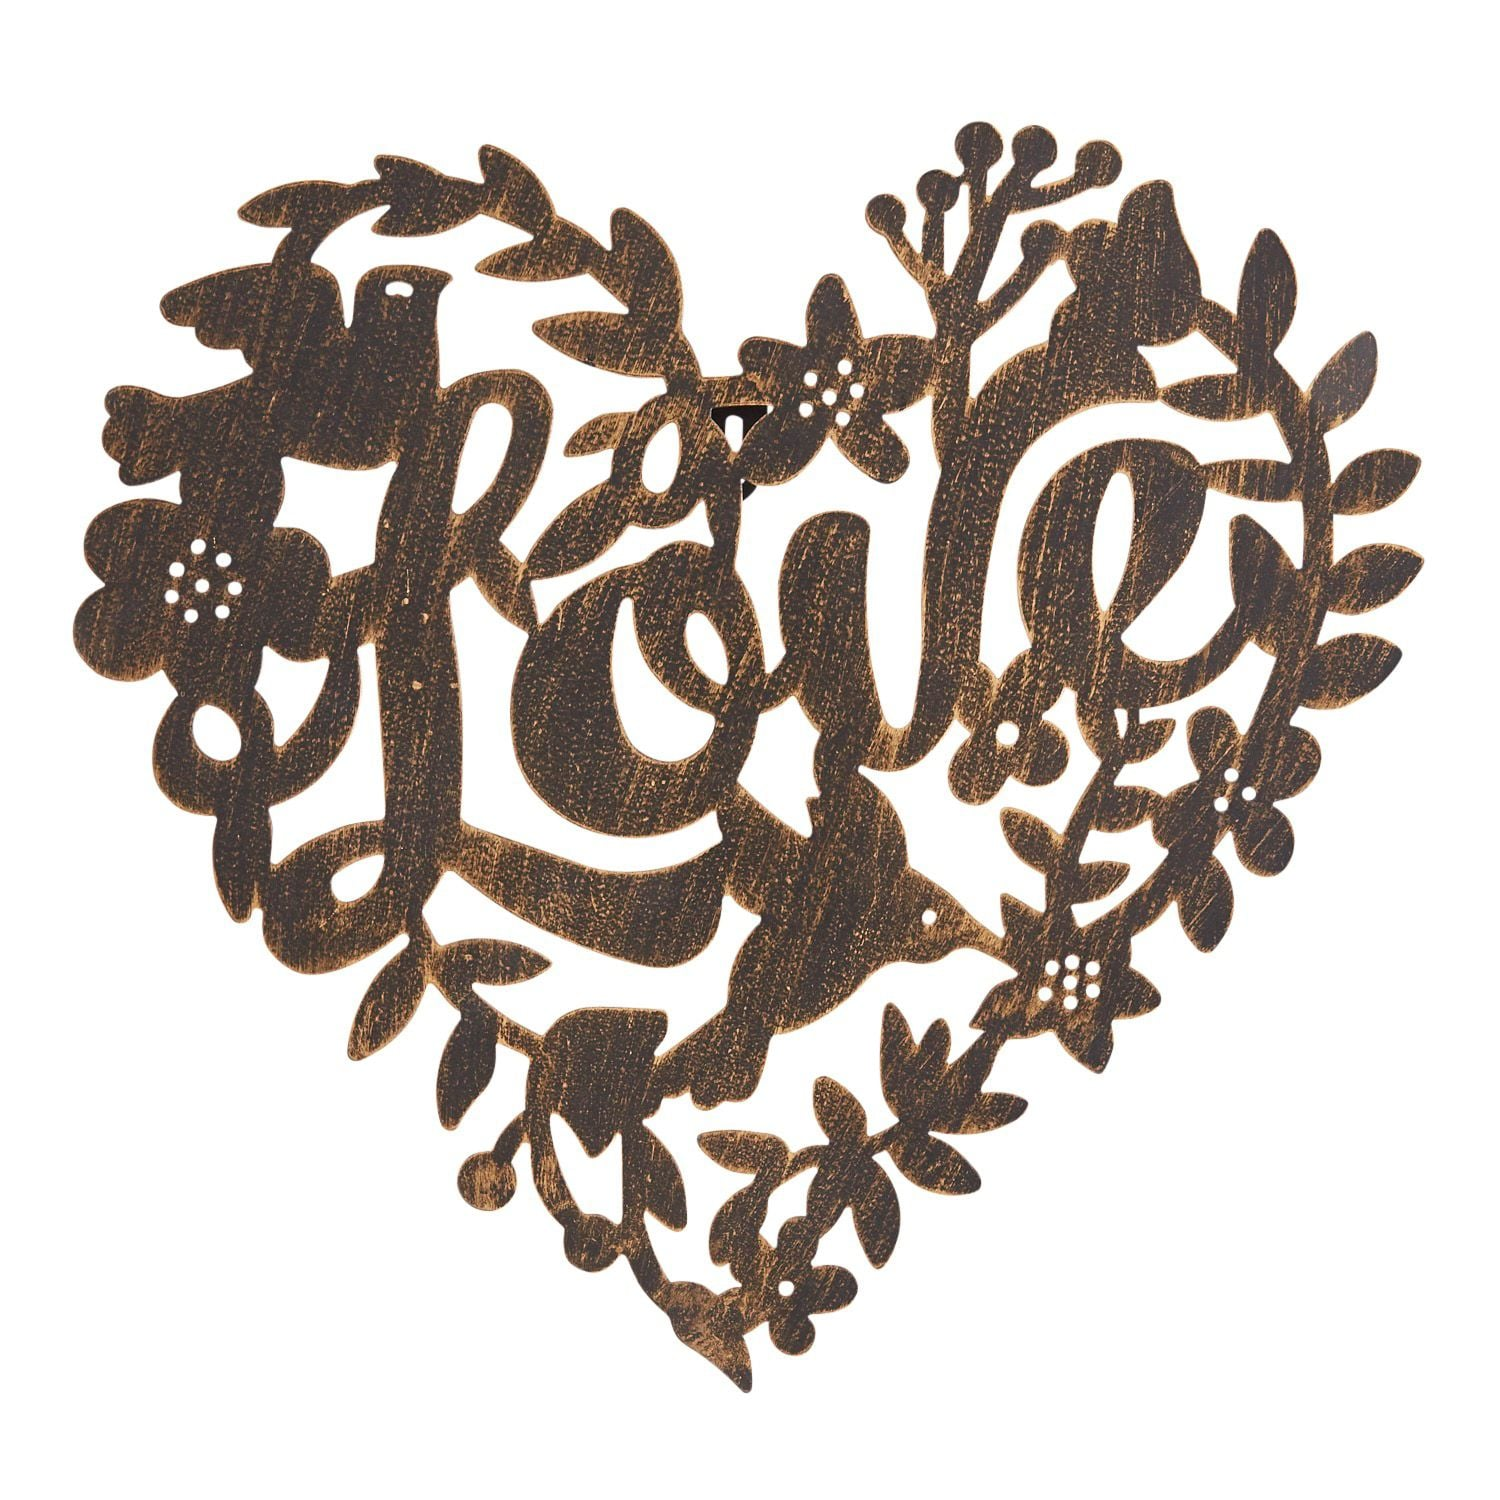 Bronze Metal Love Heart Wall Decor Wait Did You Know Pier